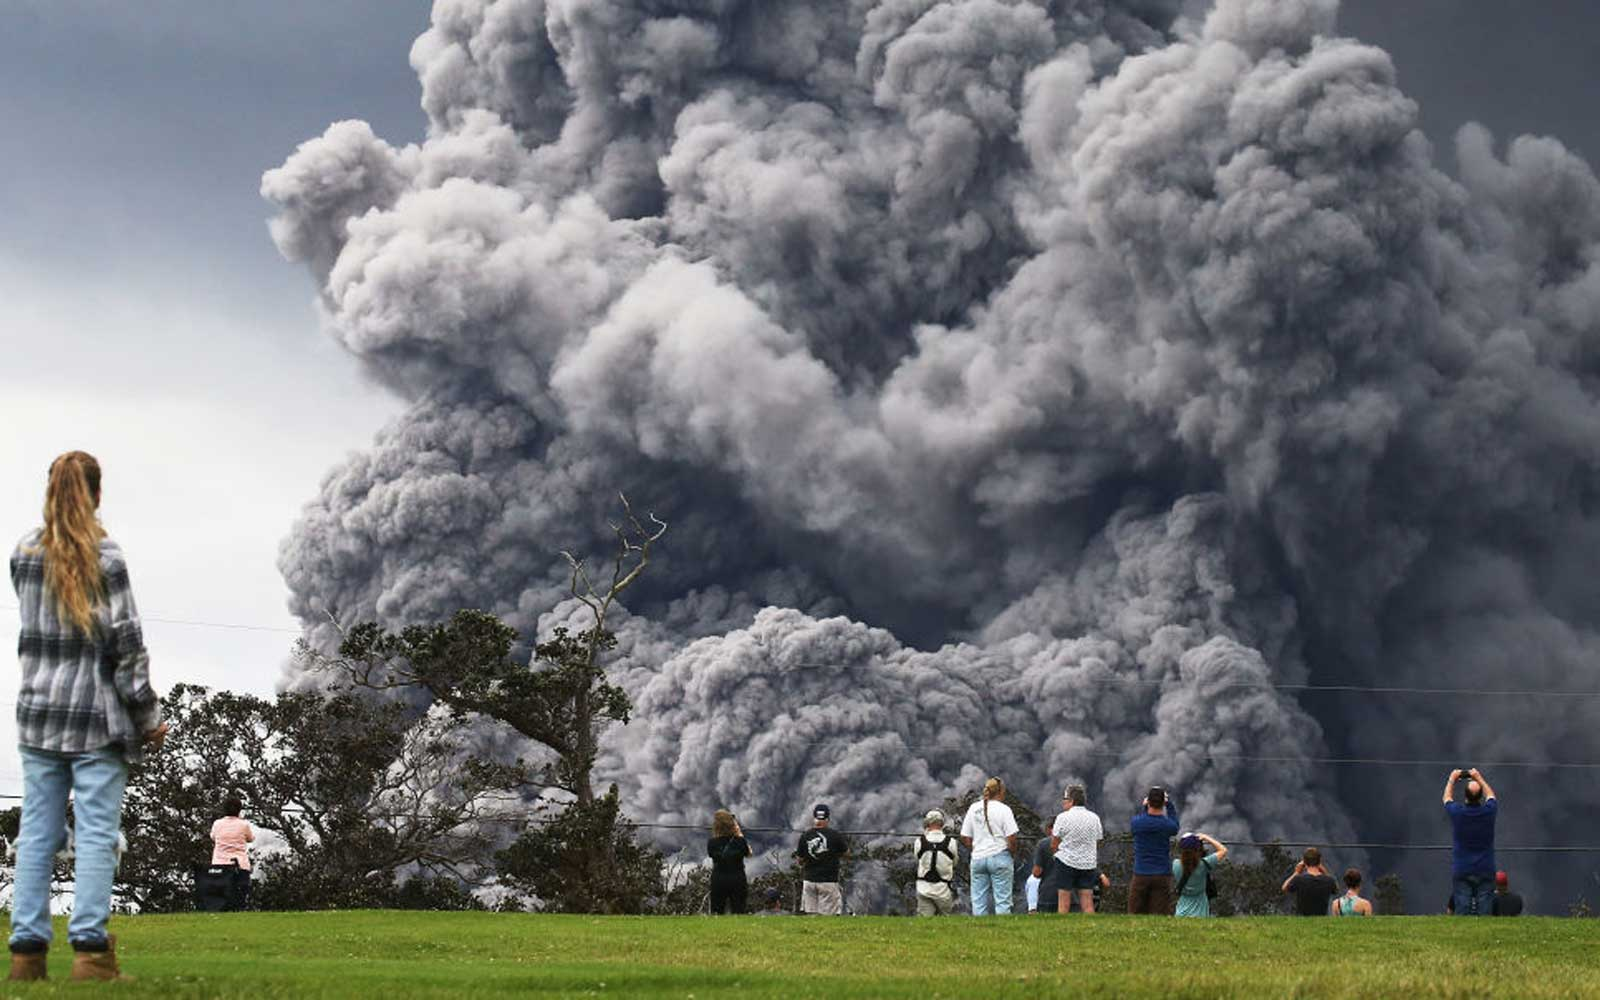 Hawaii Is on 'Red Alert' After 12,000-foot-tall Ash Cloud Bursts From Kilauea Volcano